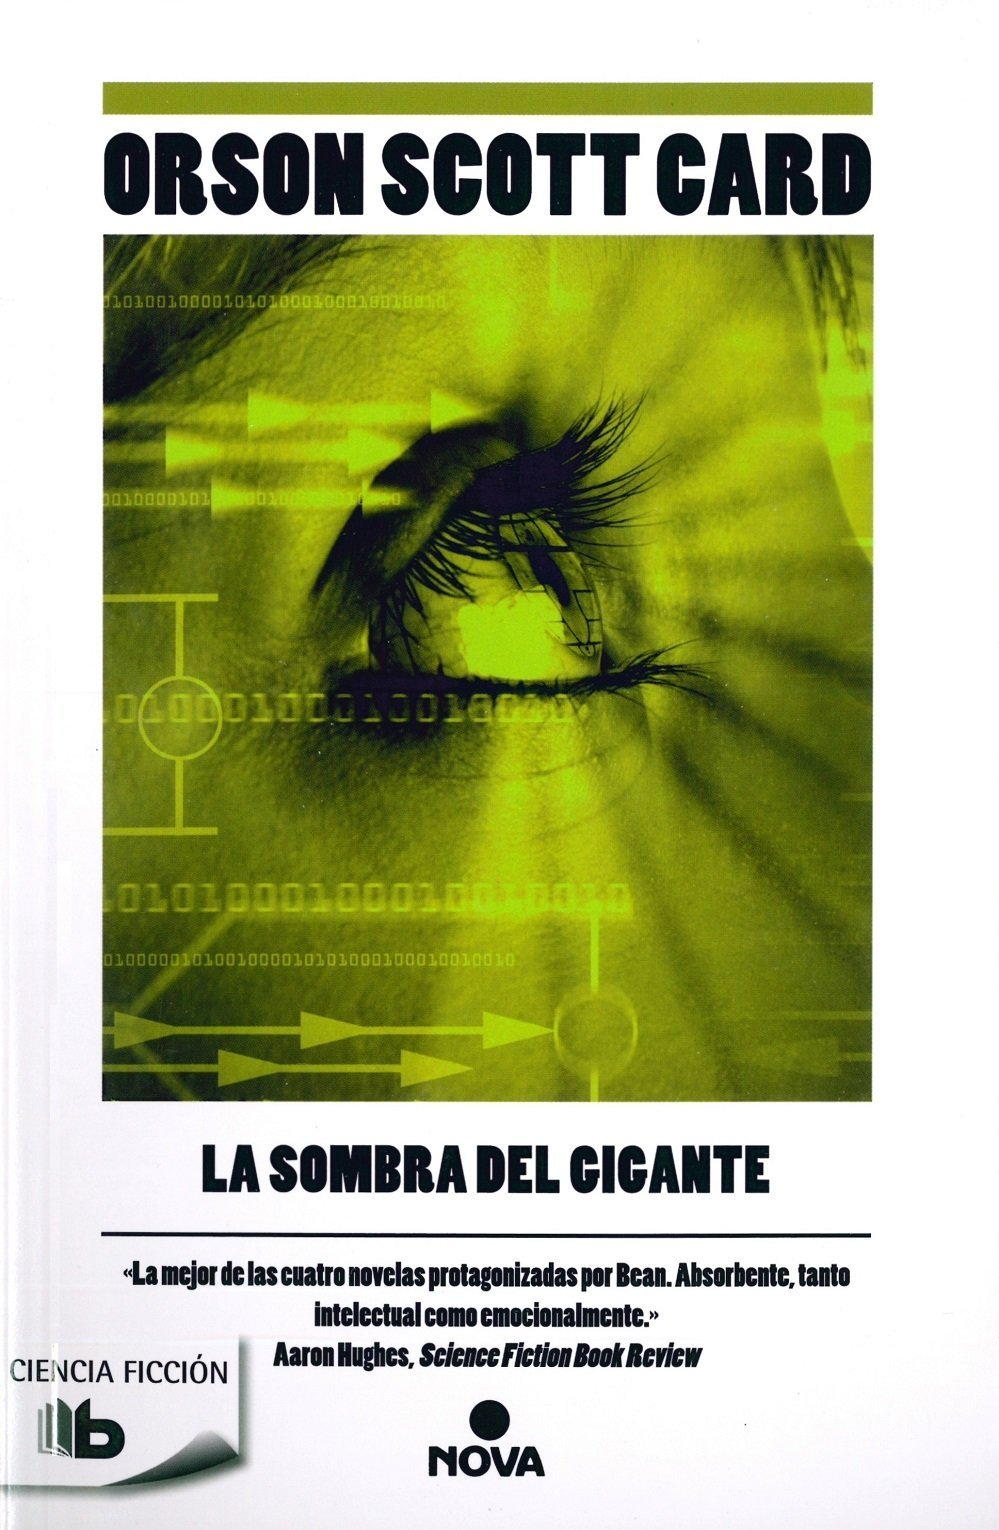 La sombra del gigante (Saga de Ender 10) (B DE BOLSILLO) Tapa blanda – 17 oct 2012 Orson Scott Card B de Bolsillo (Ediciones B) 8498727243 Science fiction.